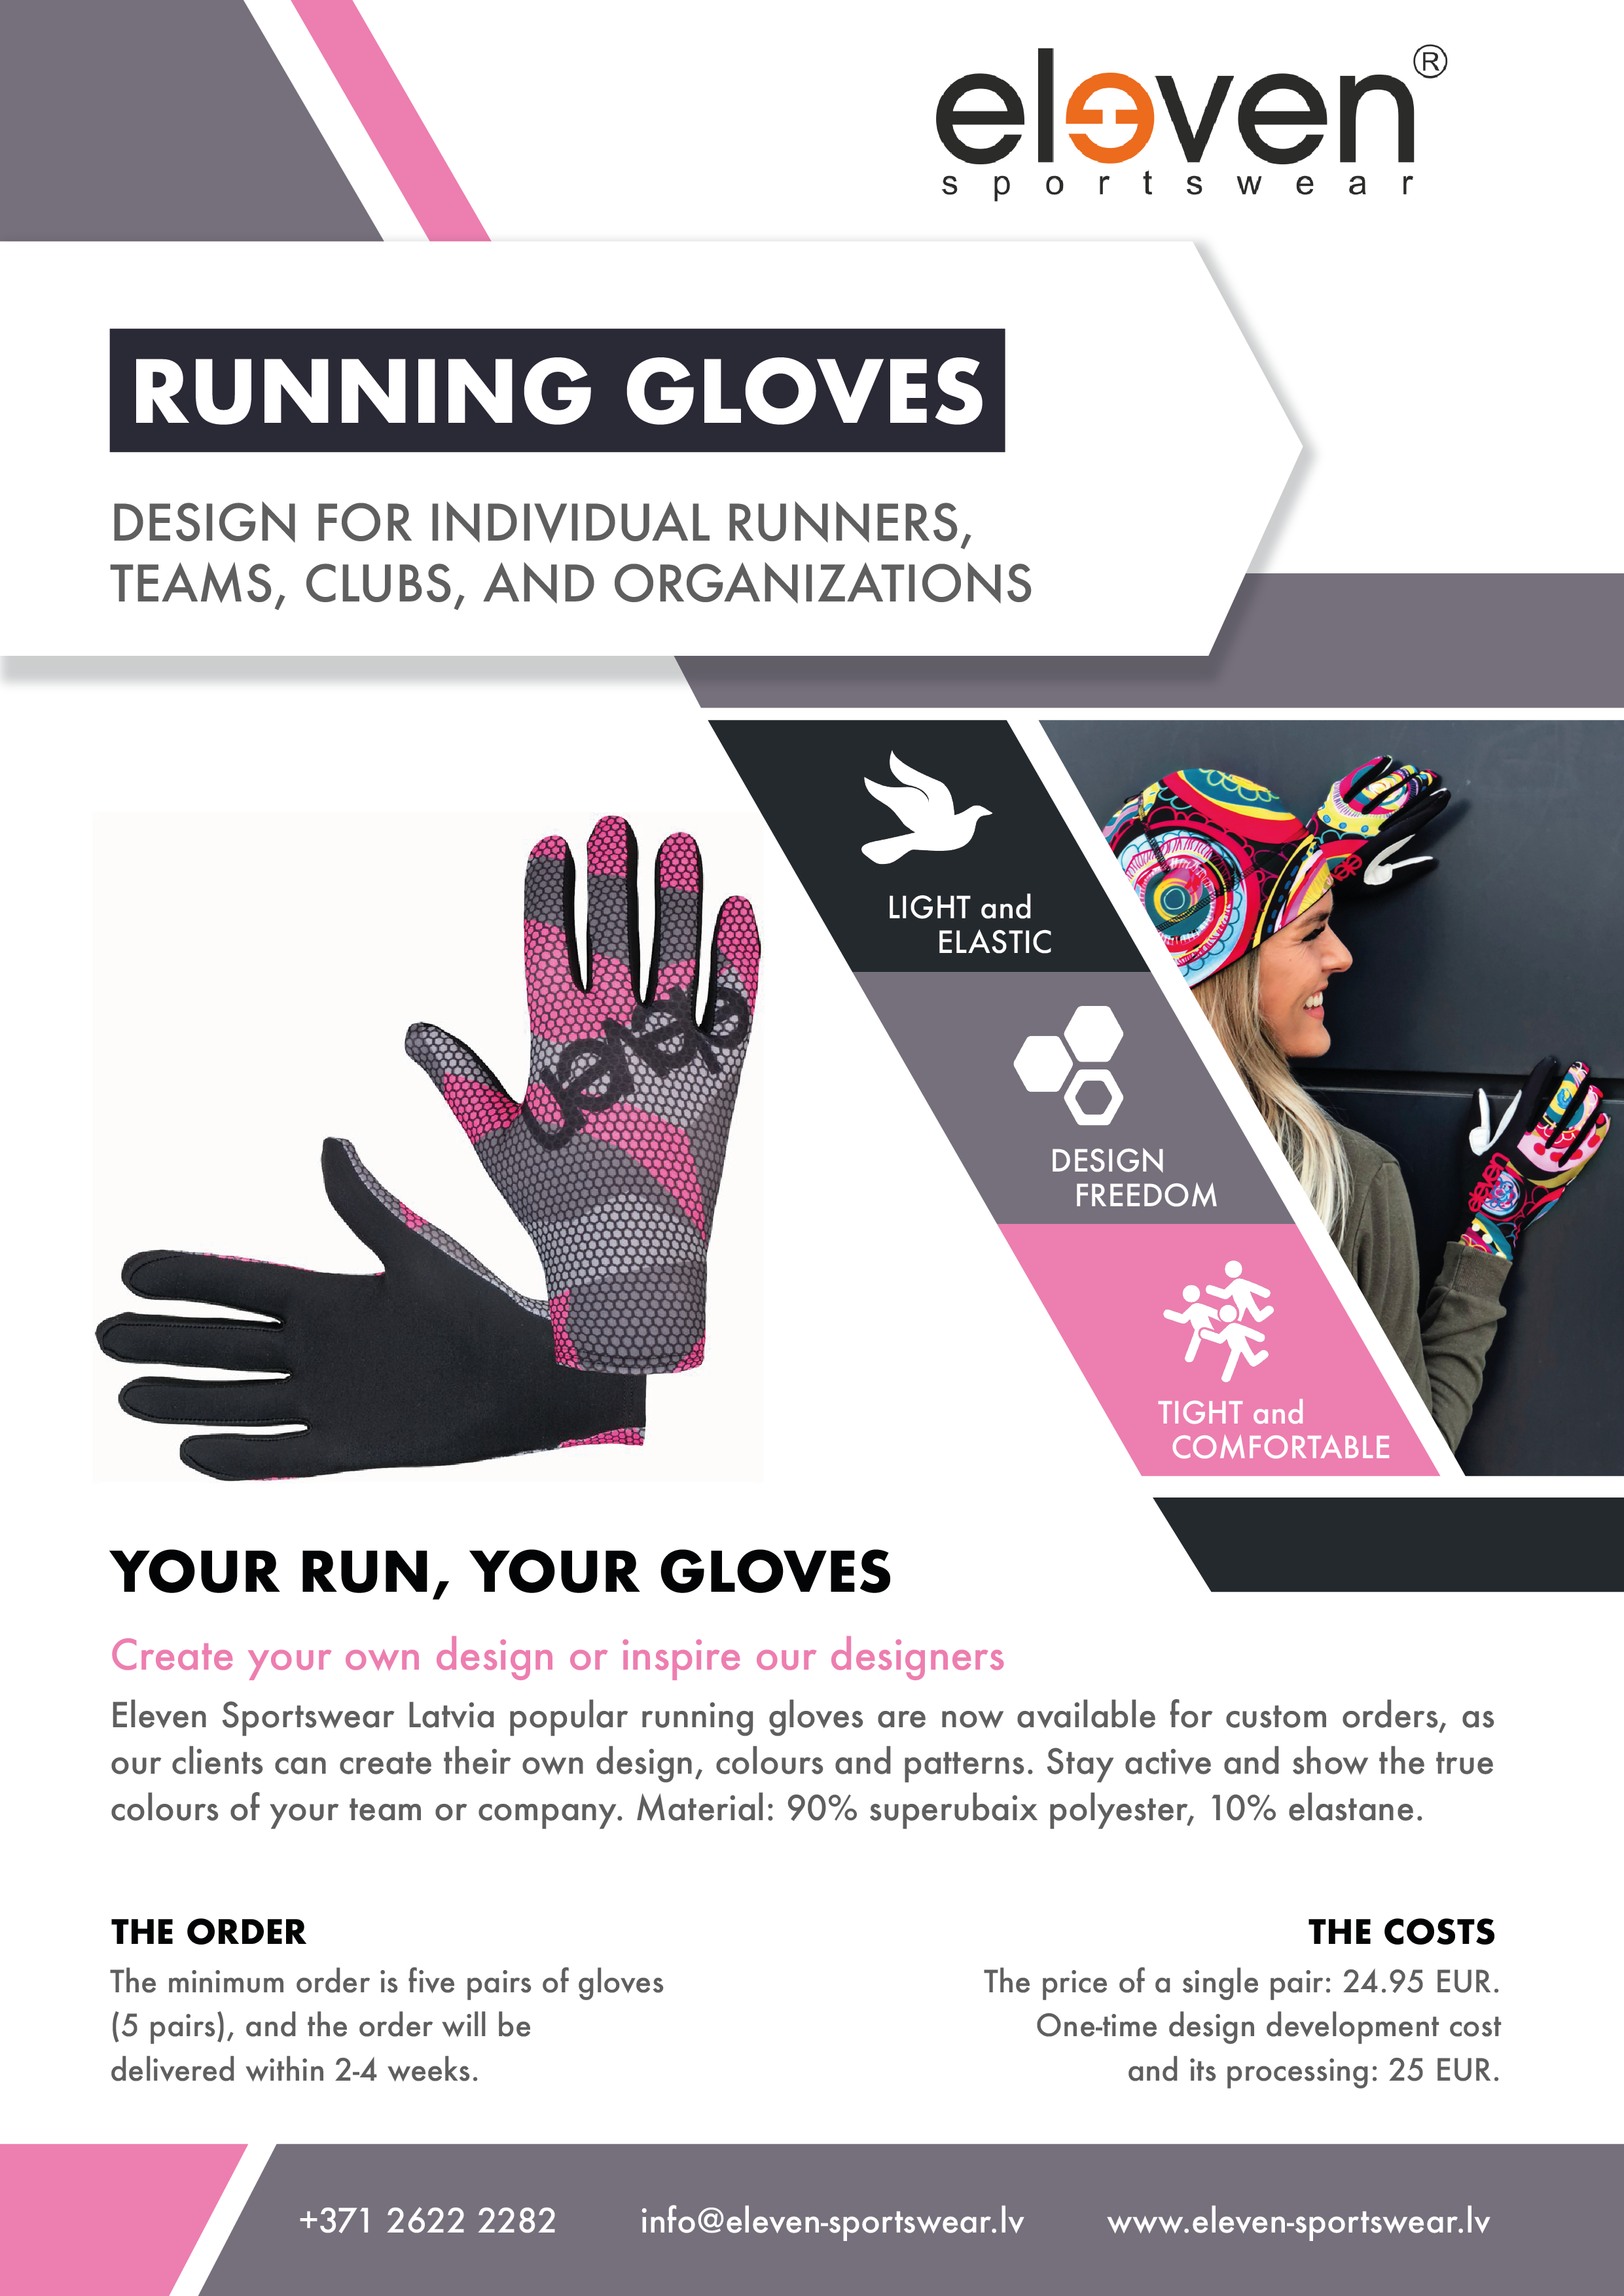 Custom design gloves for running and sports